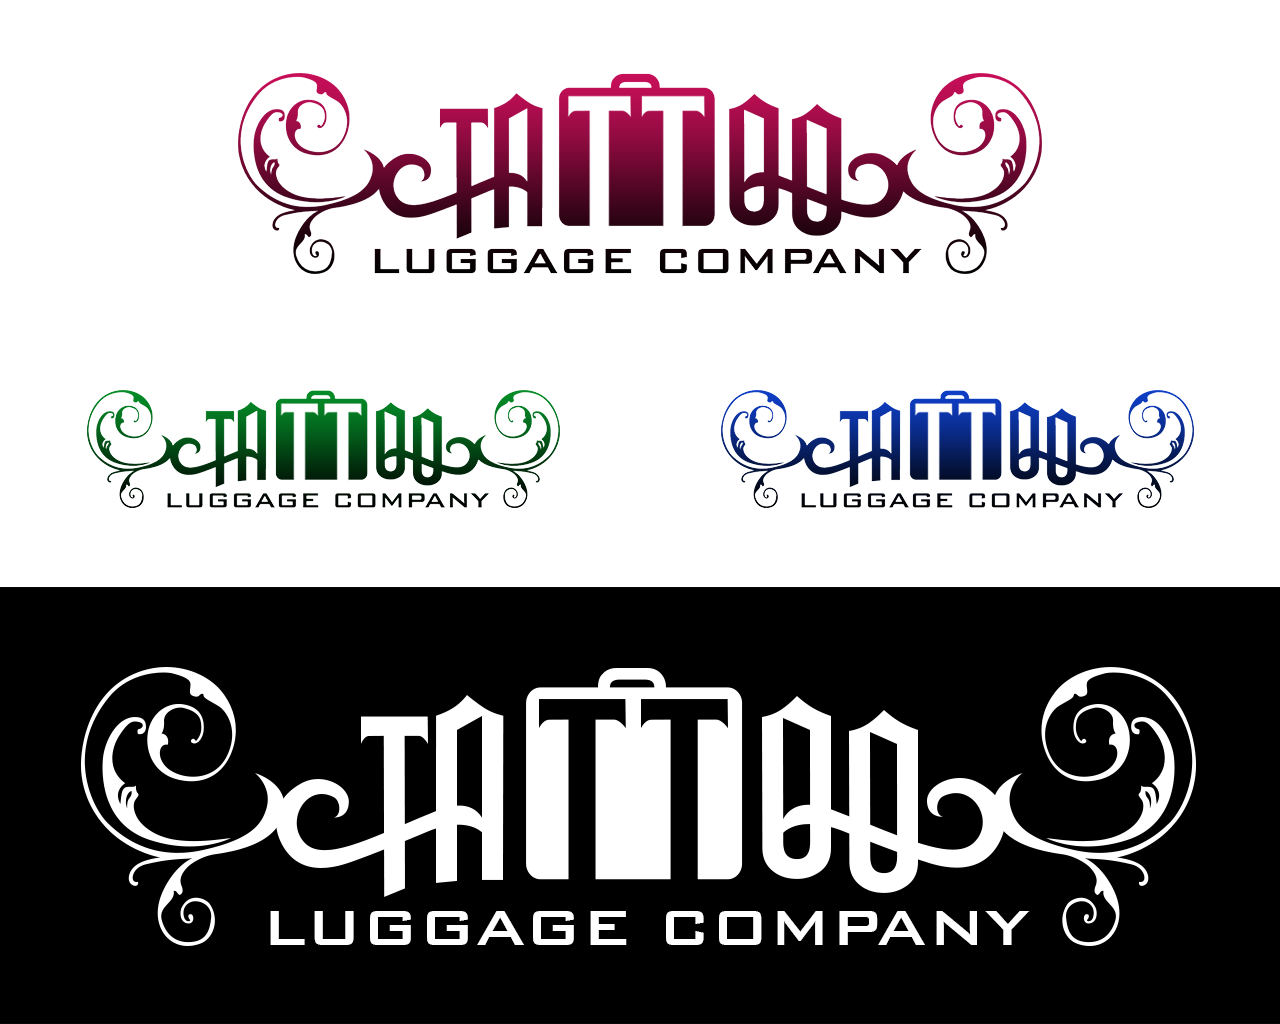 Logo Design by philipprince - Entry No. 163 in the Logo Design Contest Artistic Logo Design for Tattoo Luggage Company.